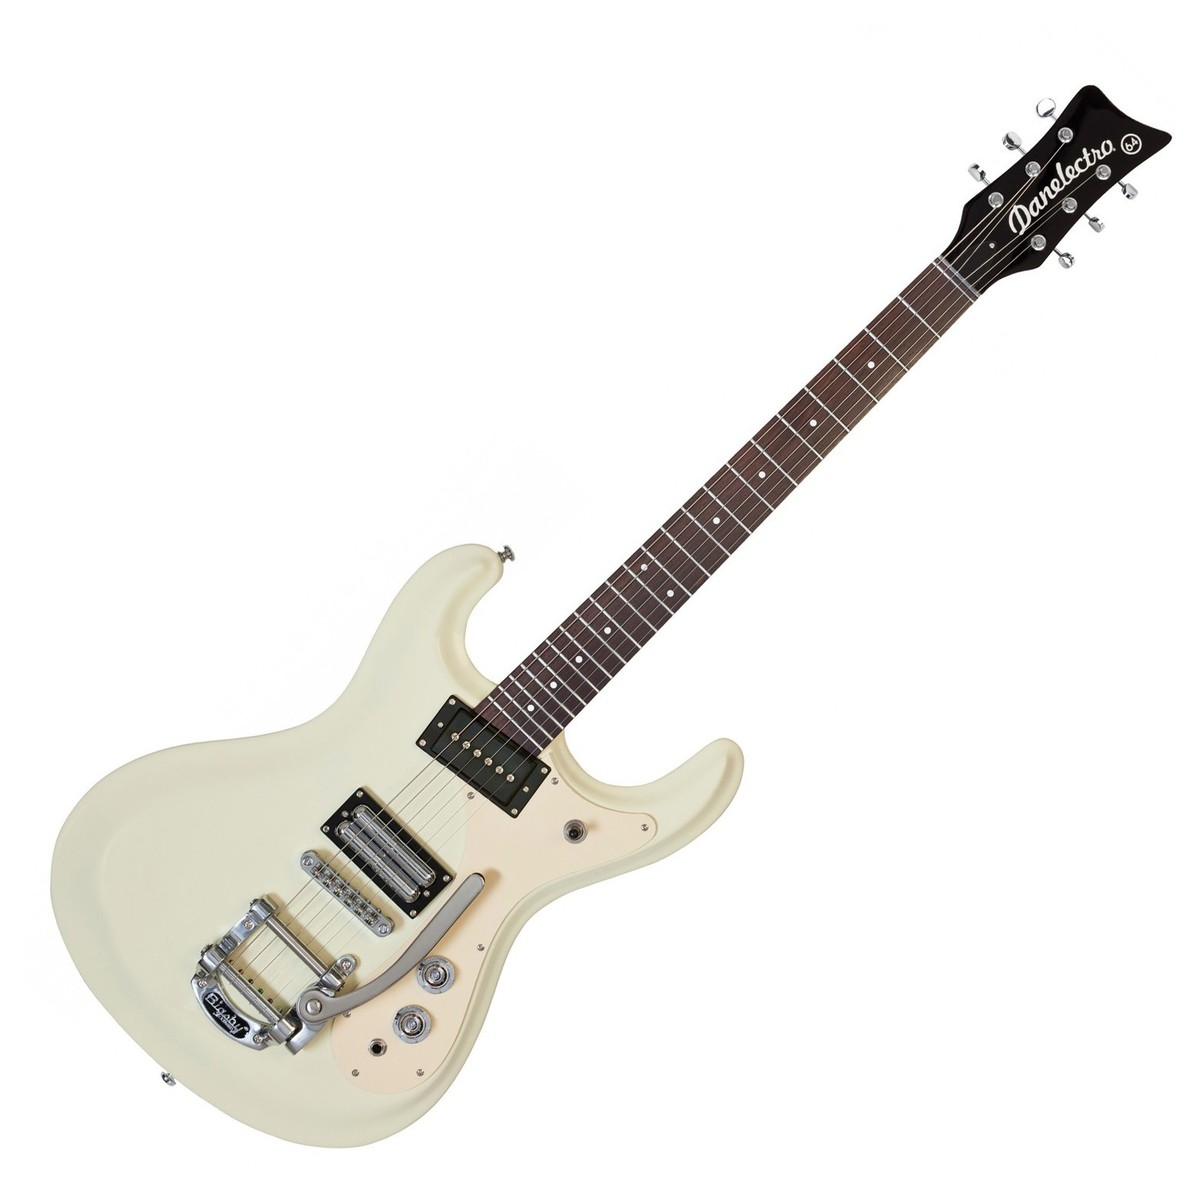 Dating danelectro guitars